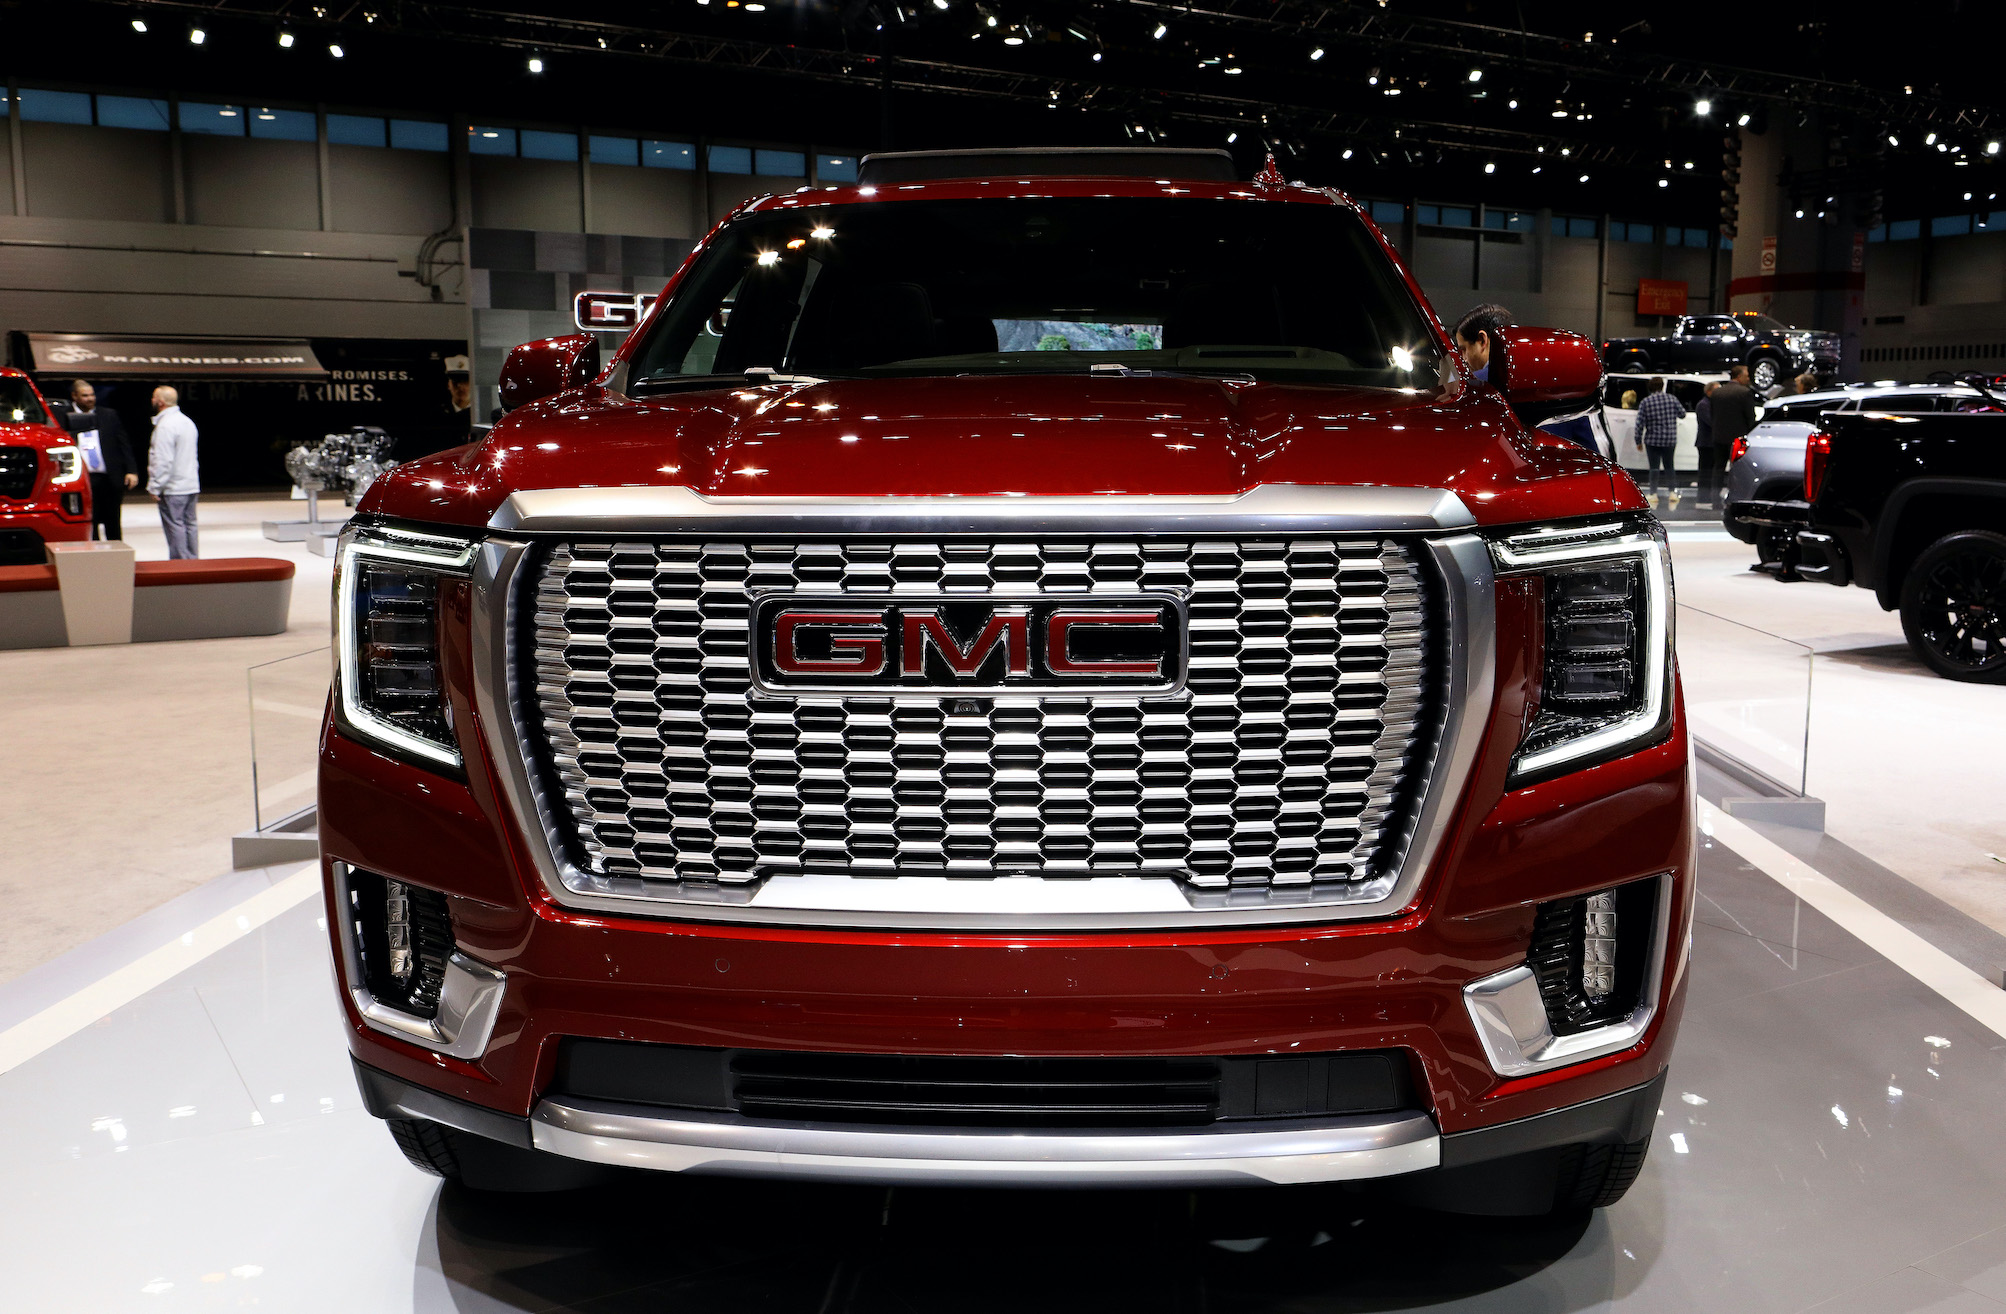 the 2021 gmc yukon denali is coming soon with major tech upgrades https www motorbiscuit com the 2021 gmc yukon denali is coming soon with major tech upgrades